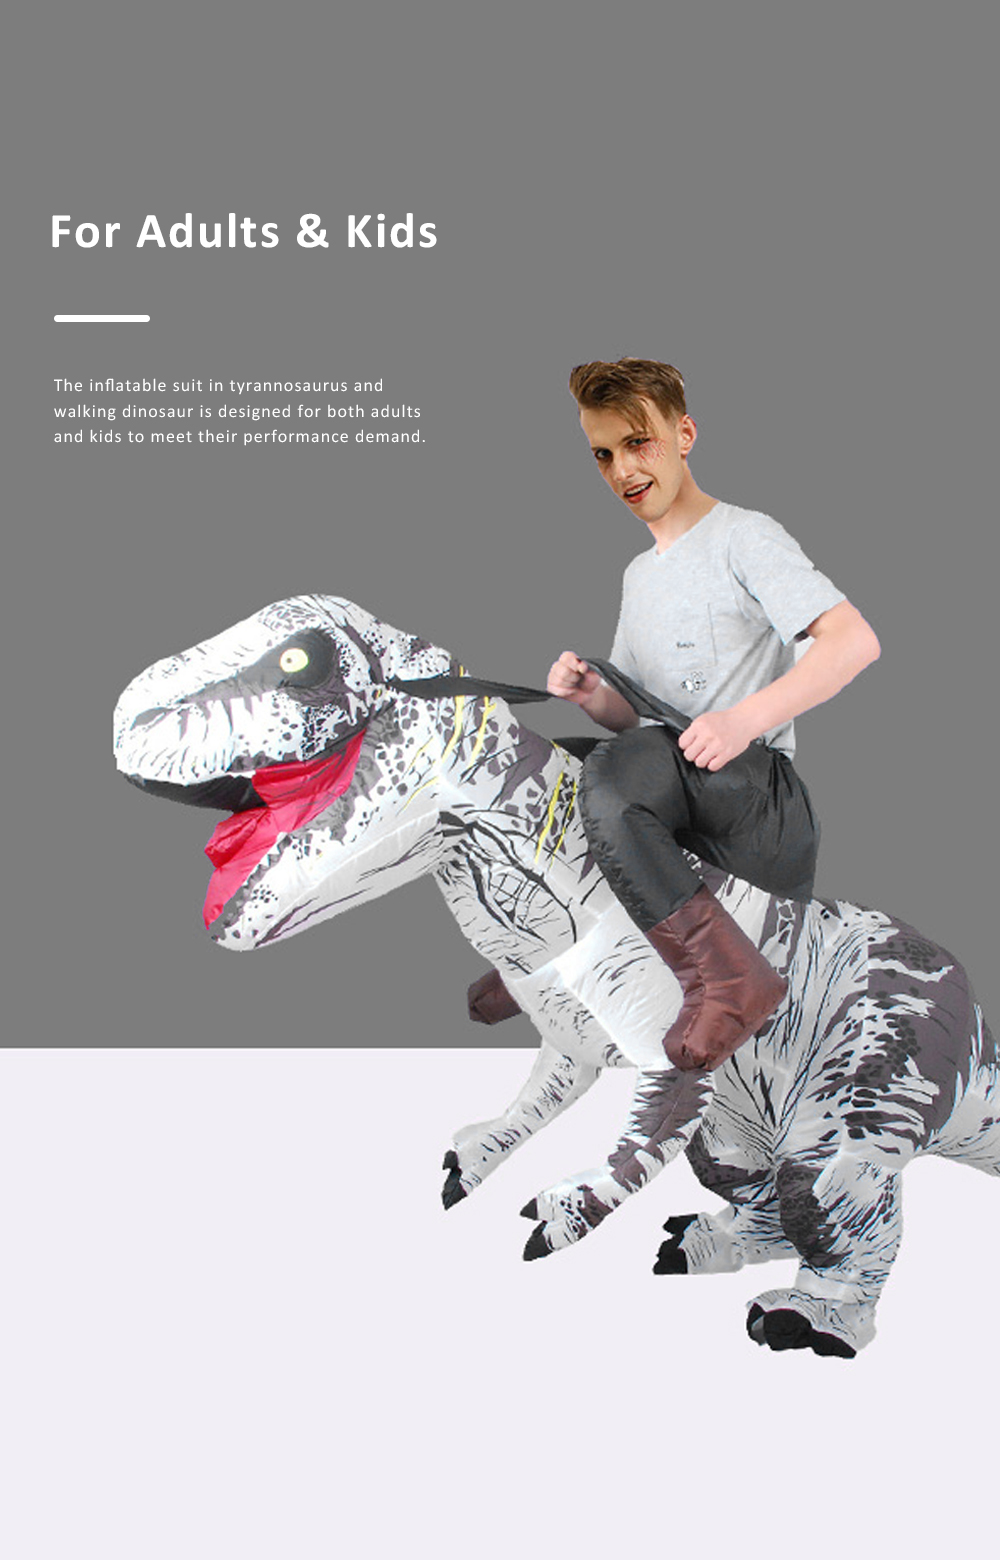 Tyrannosaurus Inflatable Suit for Halloween's Day Performance Waterproof Durable Walking Dinosaur Inflated Pressure Dress Inflatable Costume 4